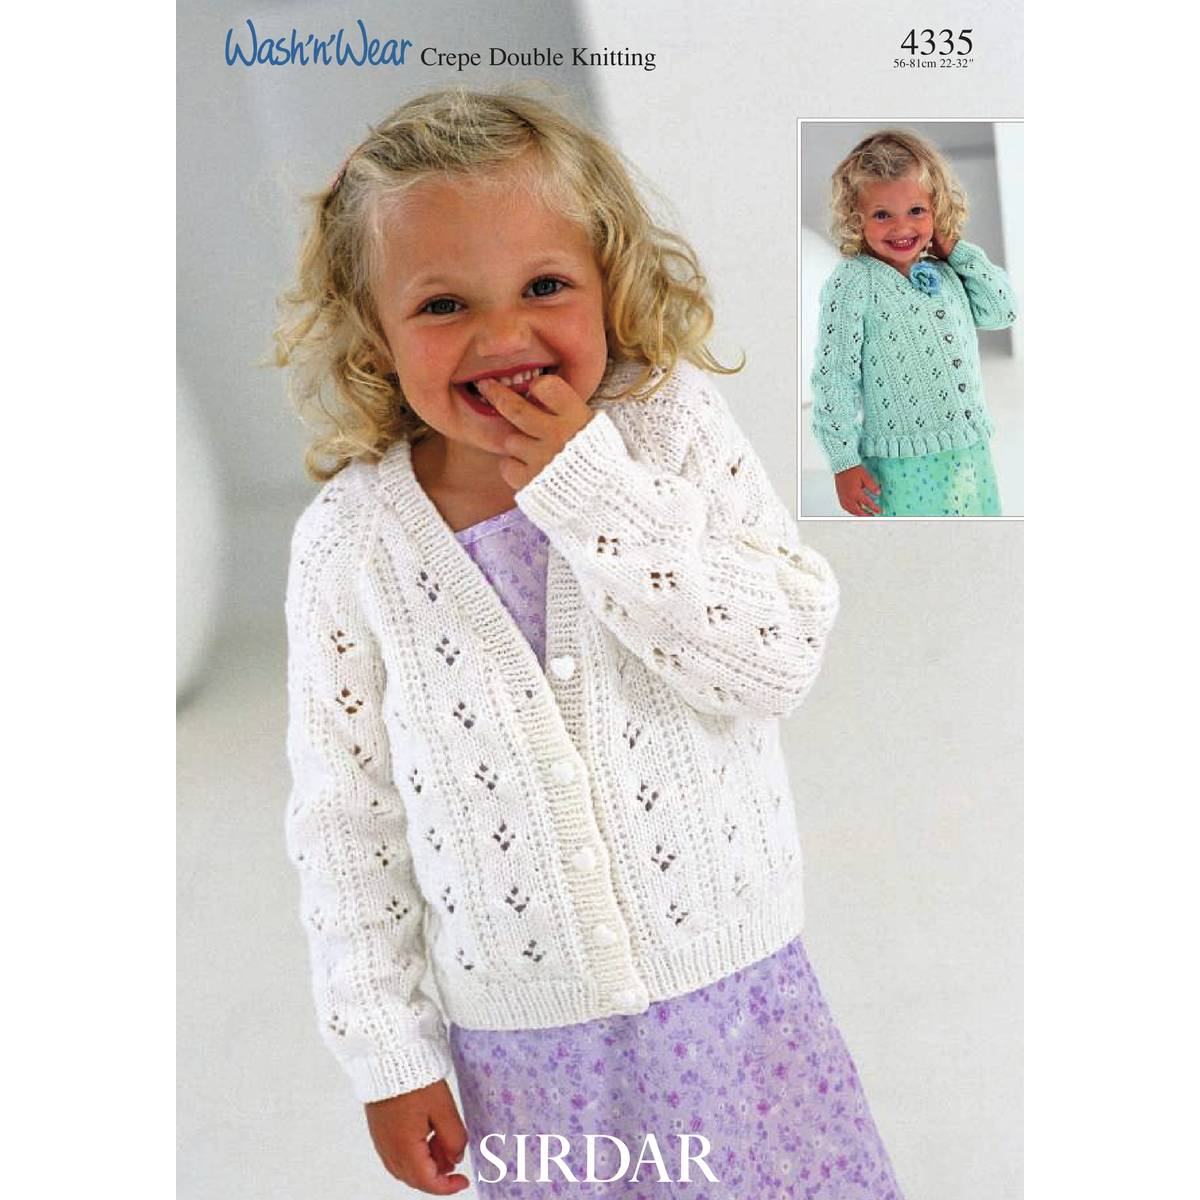 Childrens Aran Knitting Patterns Knitting Patterns Expert Easy Knitting Patterns Hobcraft